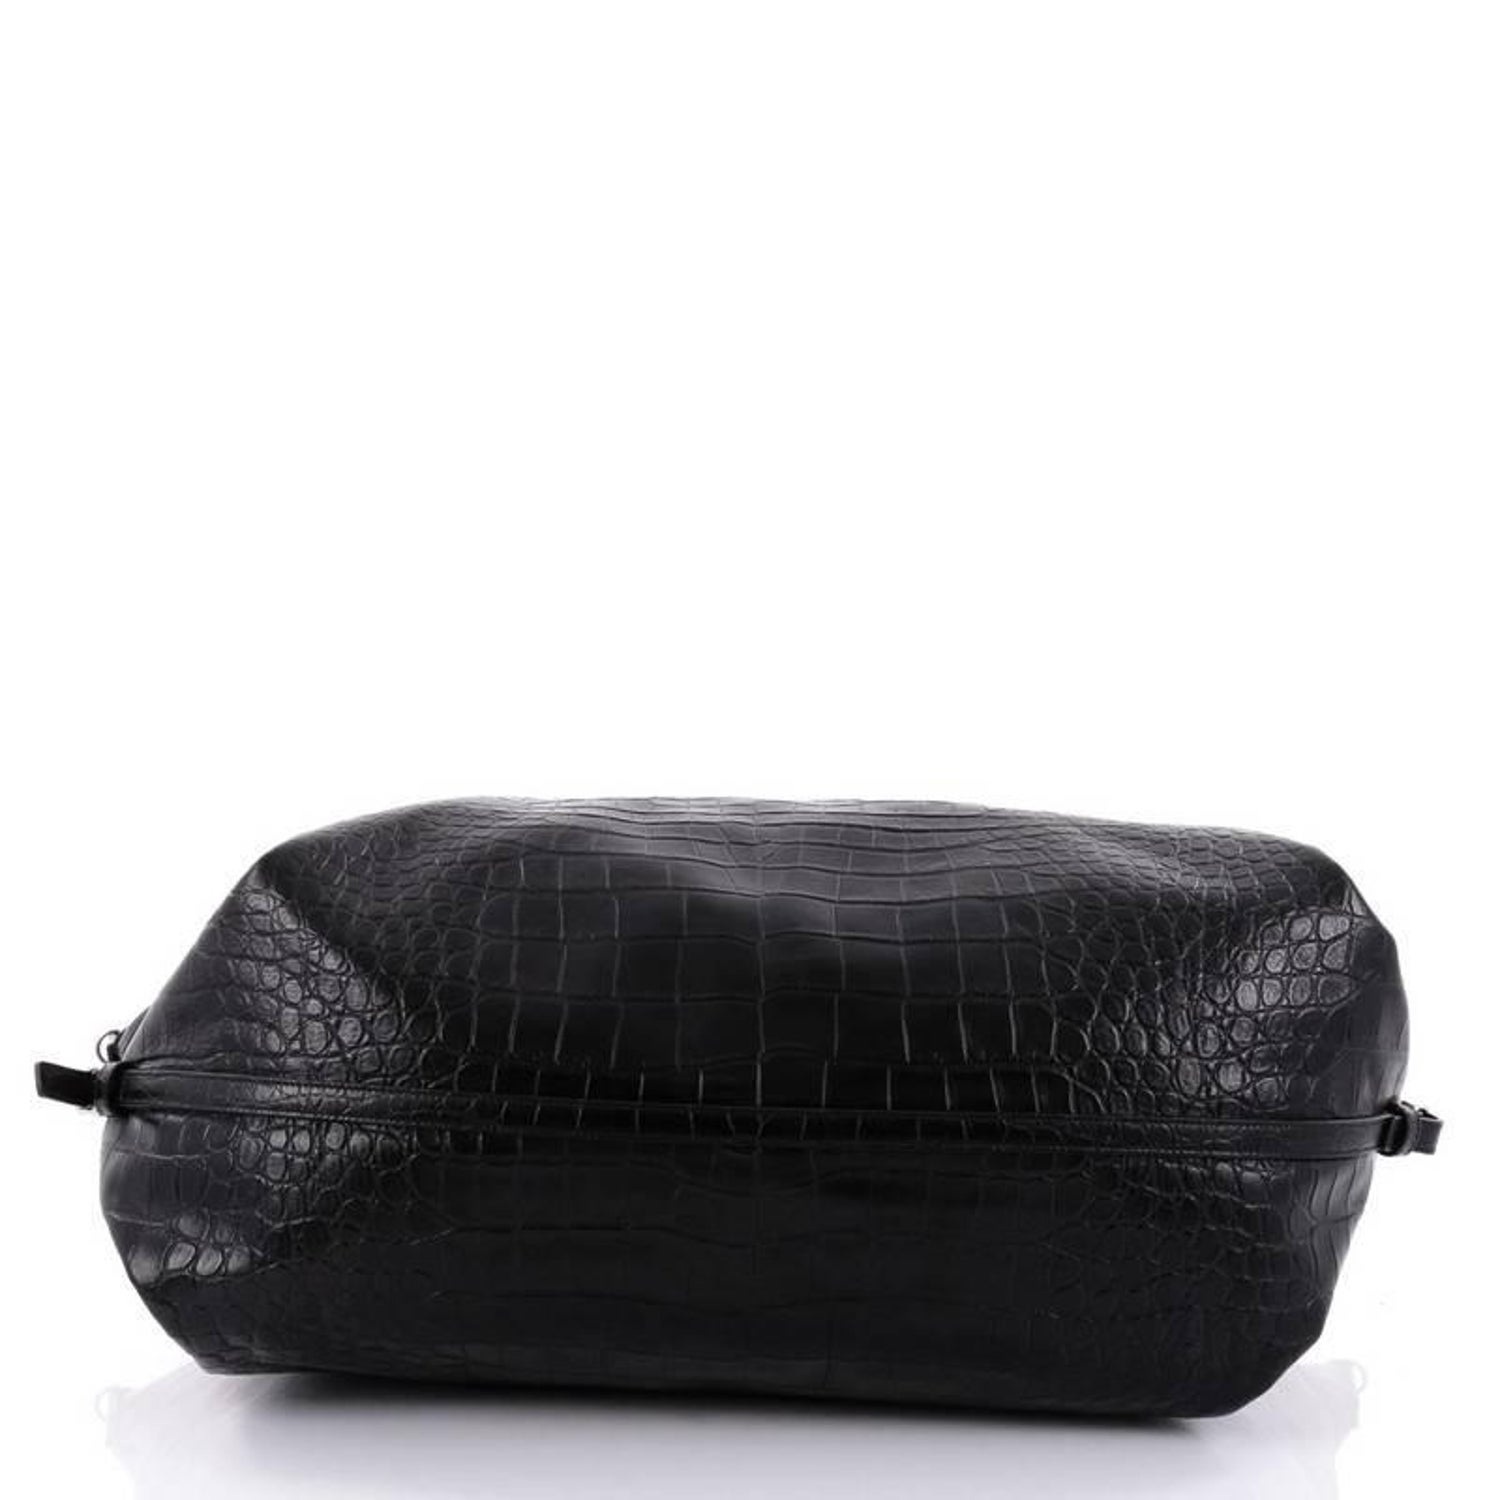 3b45a99039 Saint Laurent ID Convertible Bag Crocodile Embossed Leather Large